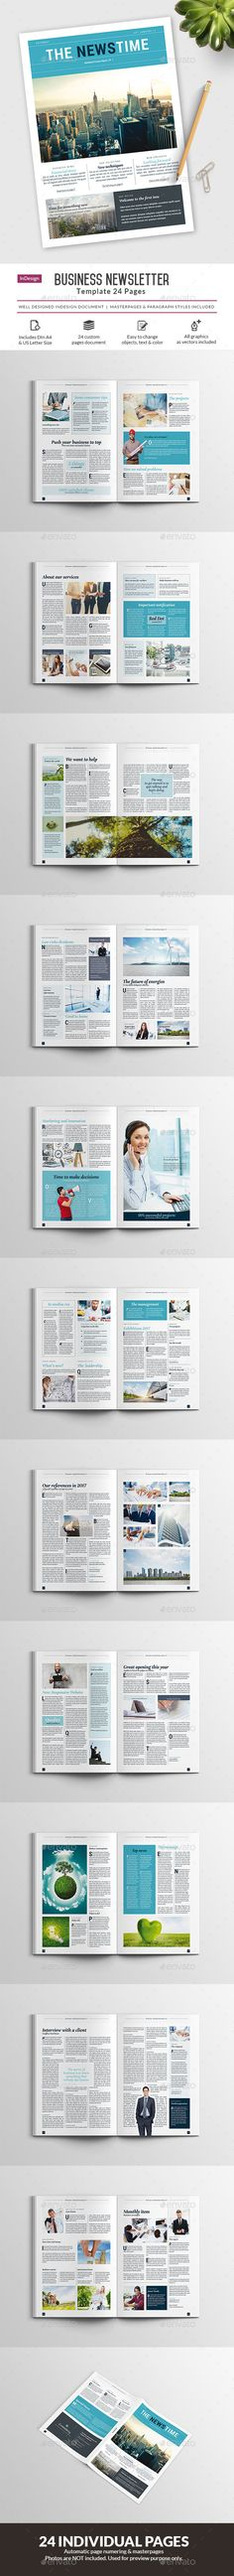 Clean Business Newsletter - 24 pages - Newsletters Print Templates Download here : https://graphicriver.net/item/clean-business-newsletter-24-pages/19296137?s_rank=27&ref=Al-fatih